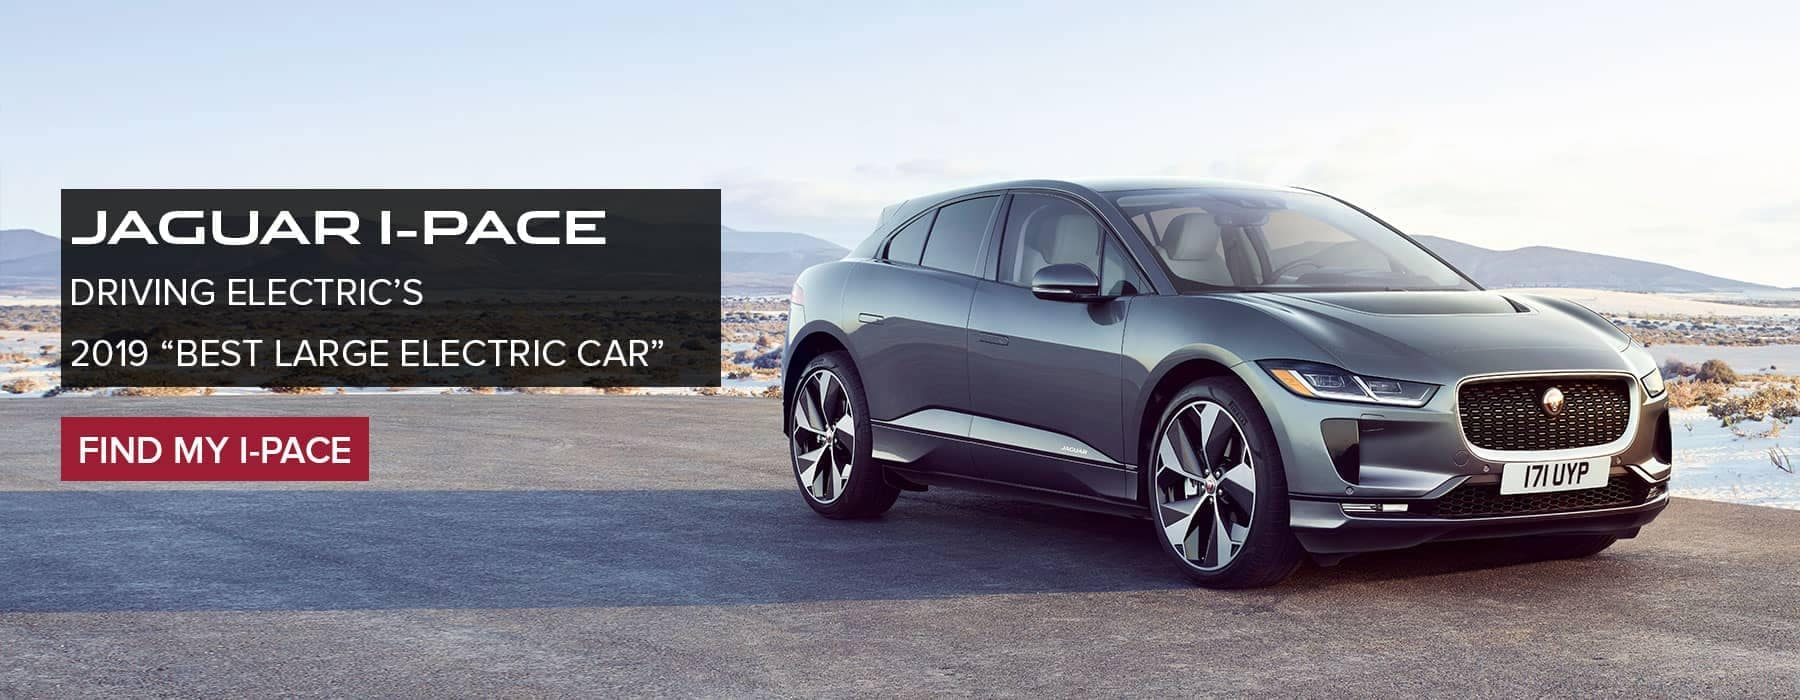 I-PACE-Best-Electric-Car